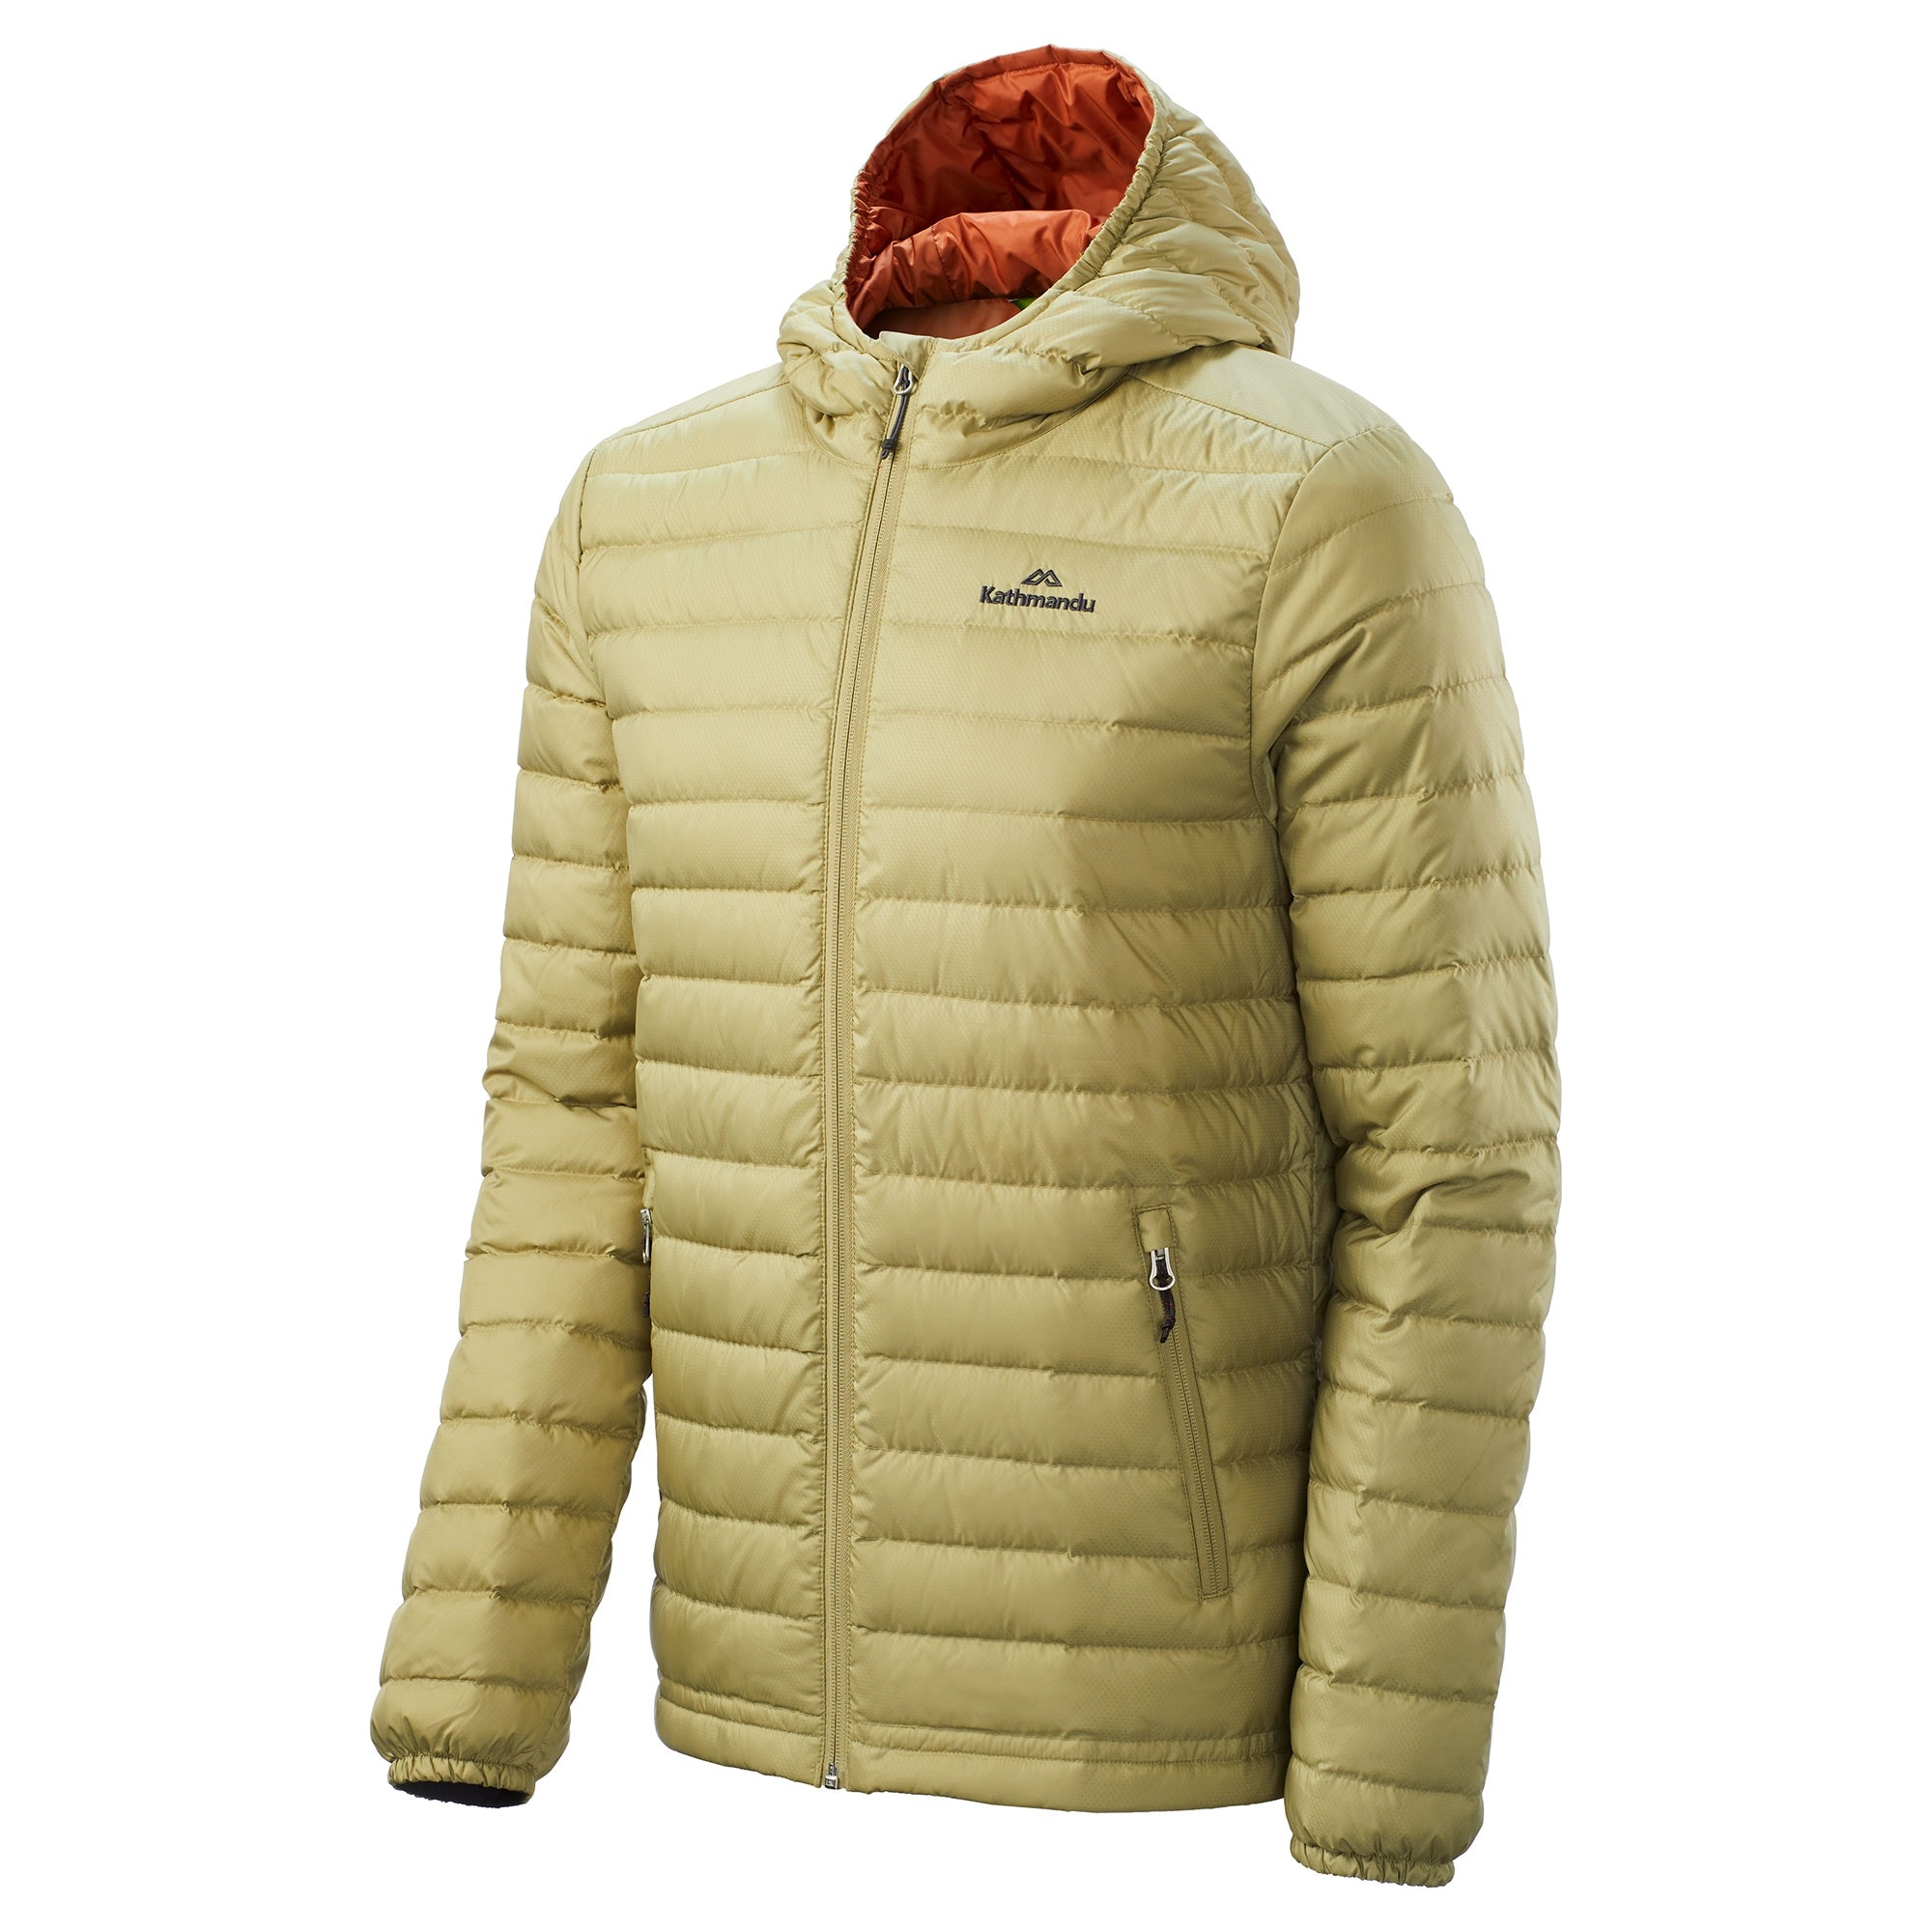 NEW-Kathmandu-Heli-Hooded-Lightweight-Compact-Water-Repellent-Warm-Men-Down thumbnail 22